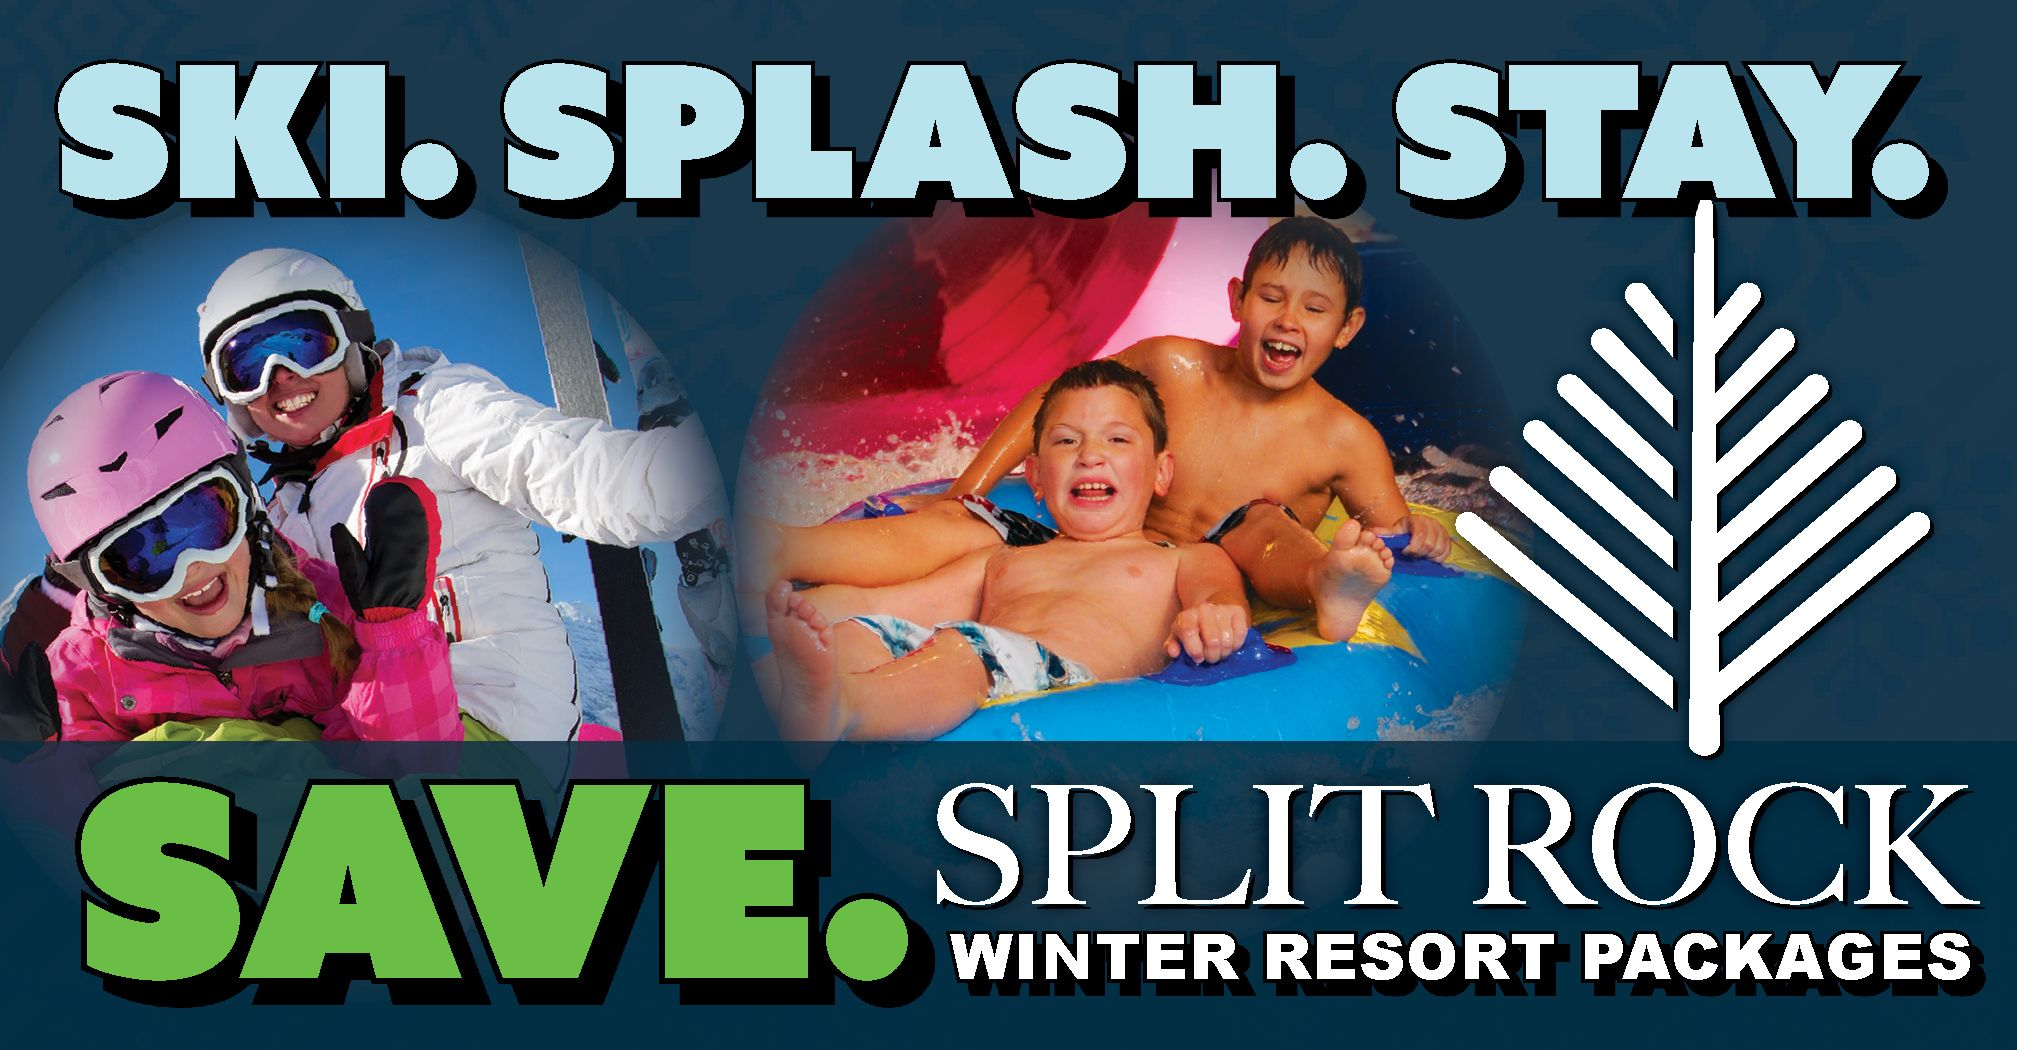 Ski Splash & Stay Promotion